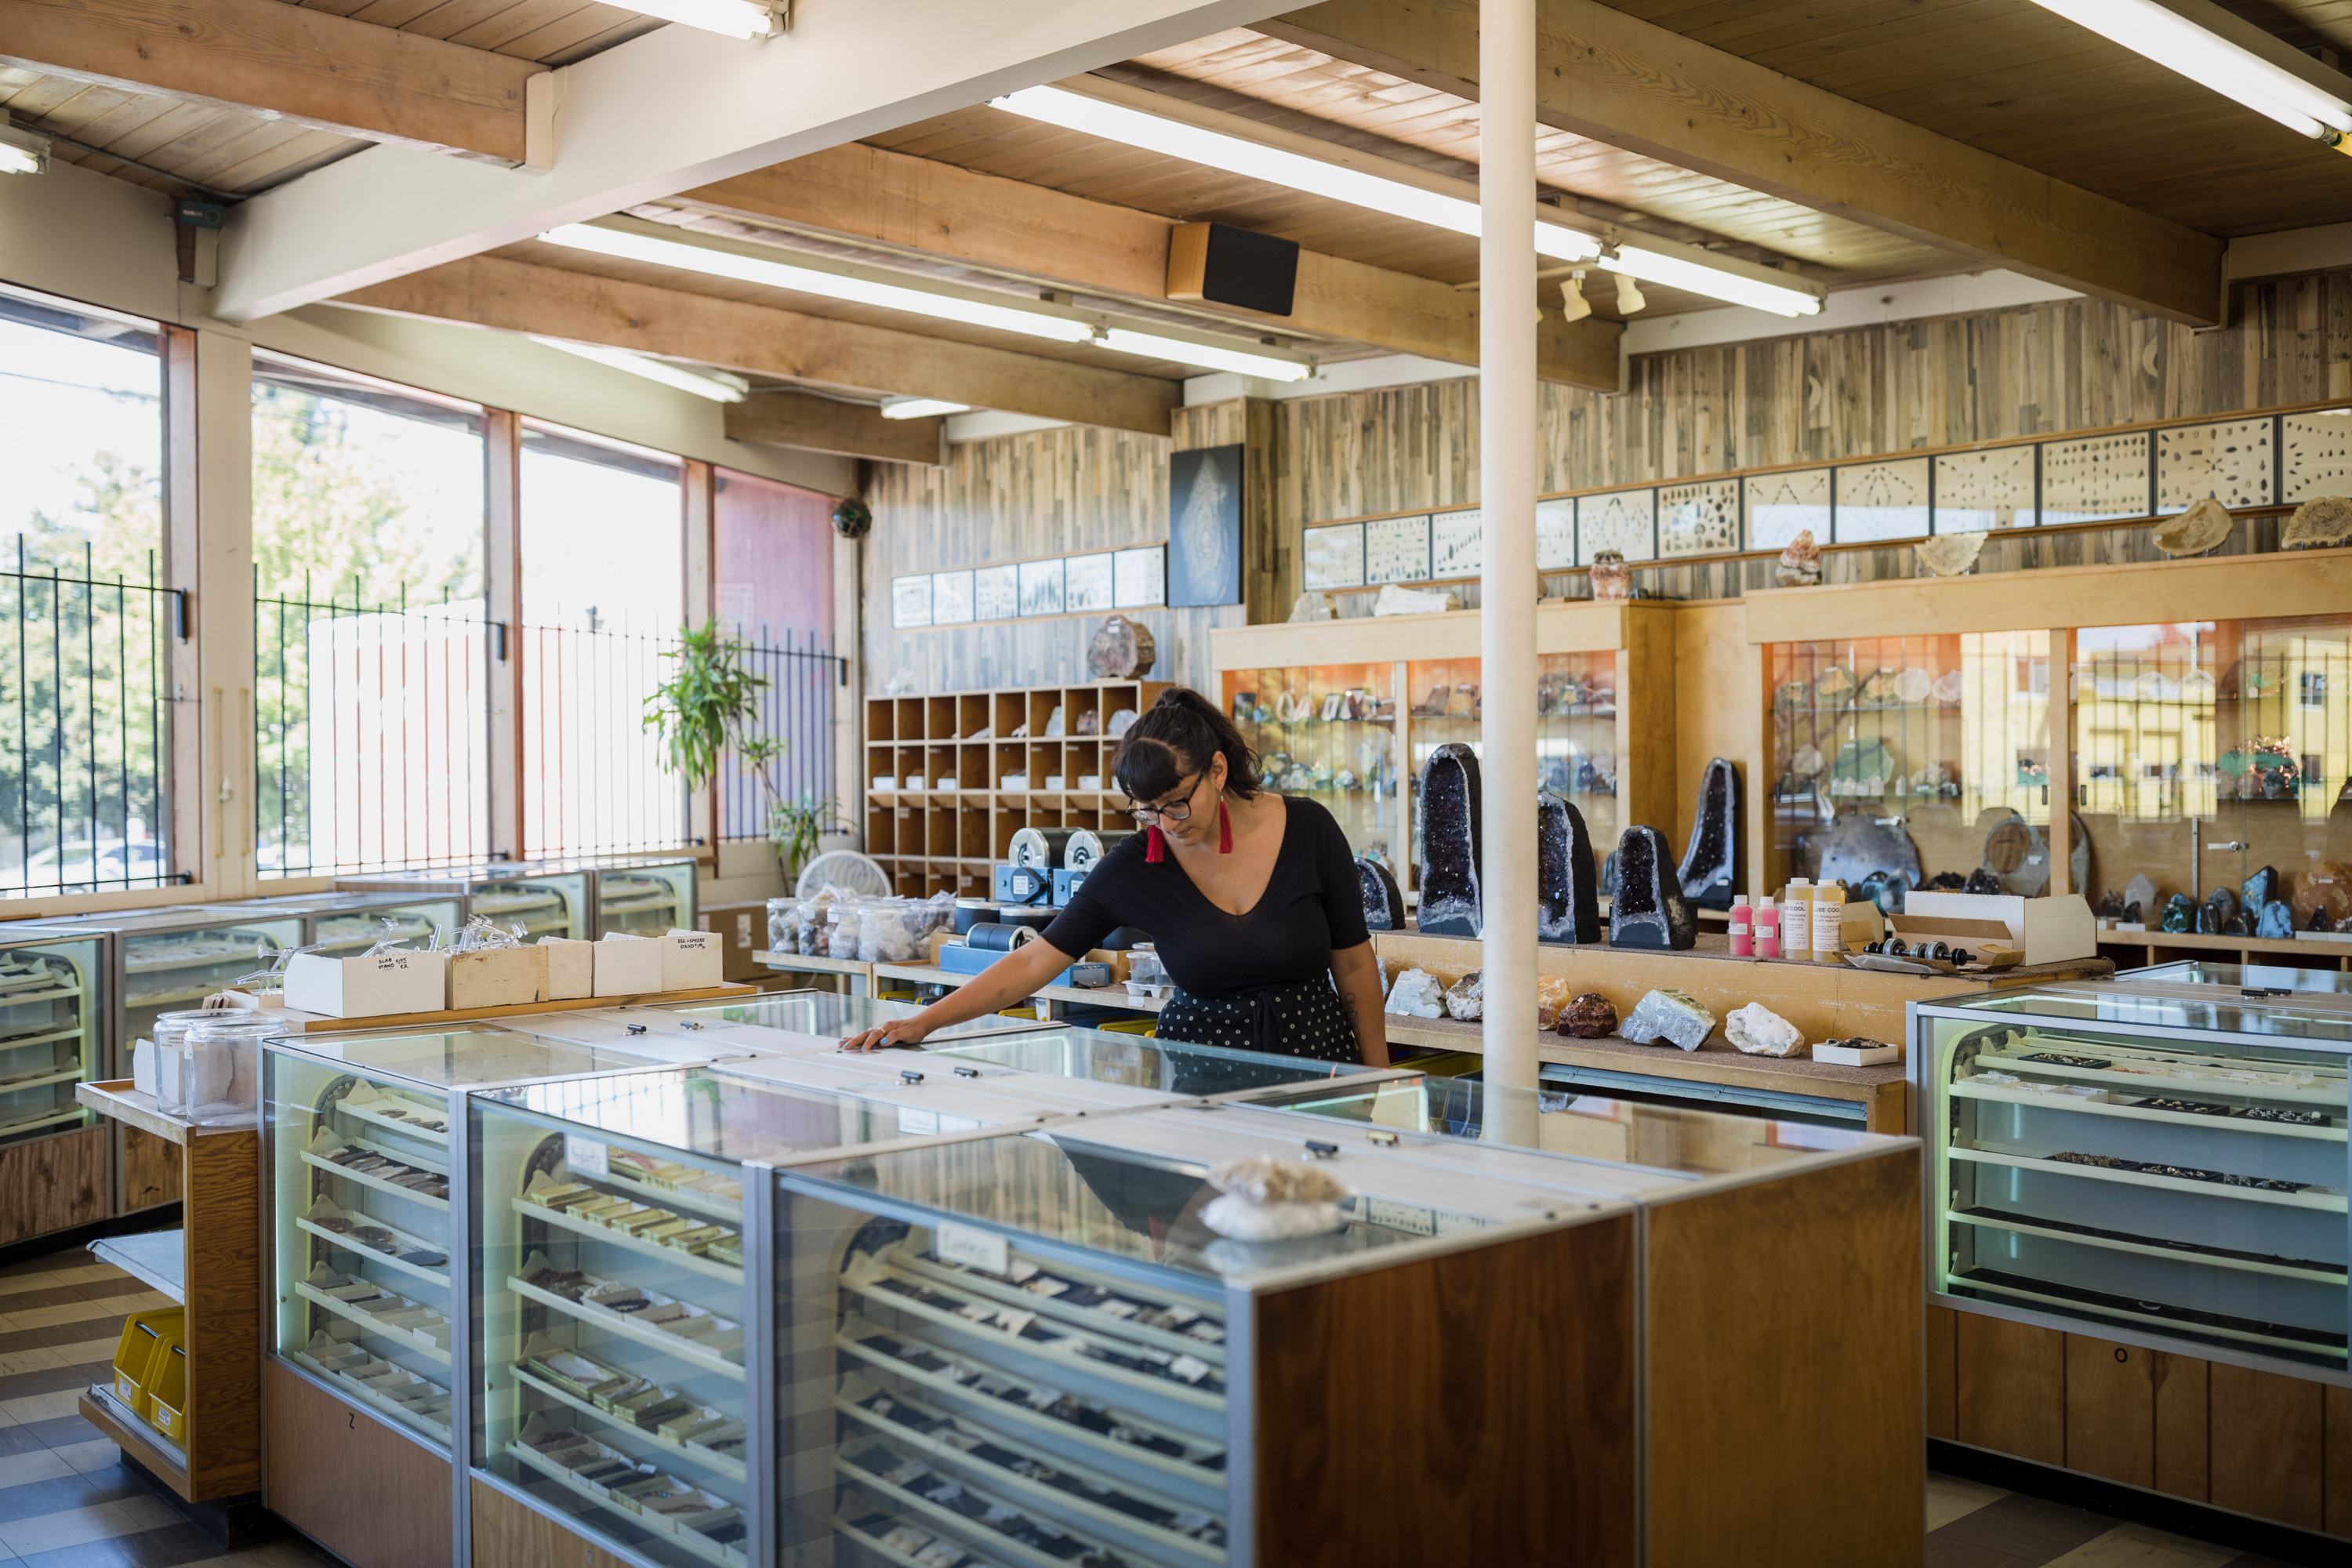 A woman peruses cabinets filled with rocks and gems